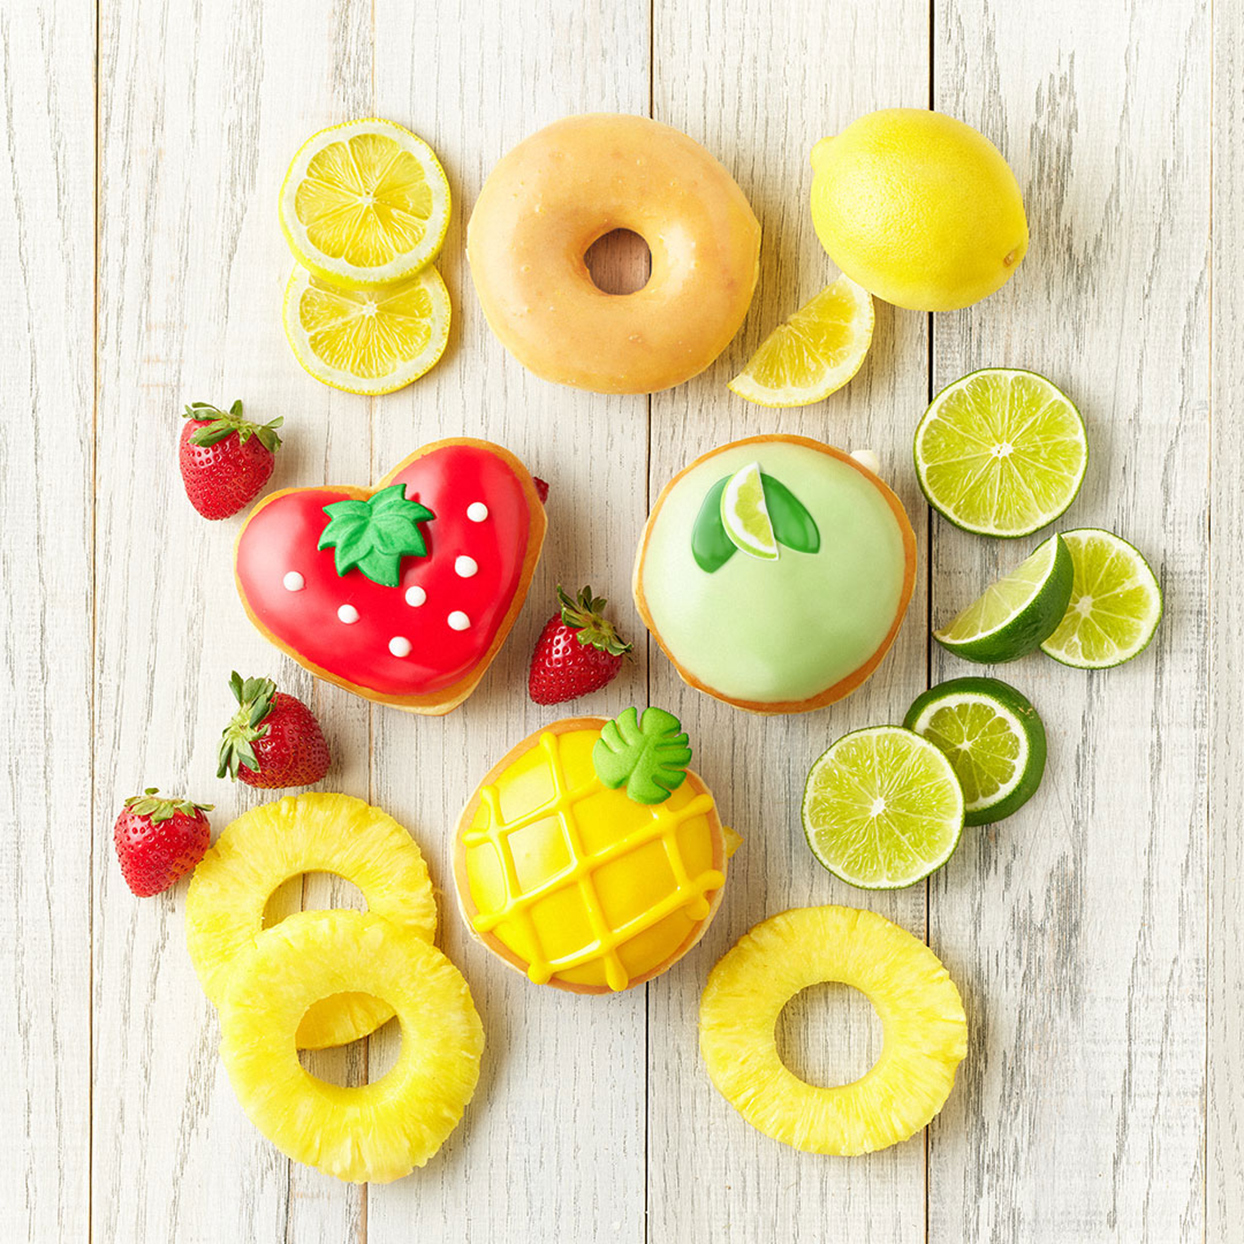 Krispy Kreme's Adorable New Fruit Donuts Are Ready to Welcome Summer